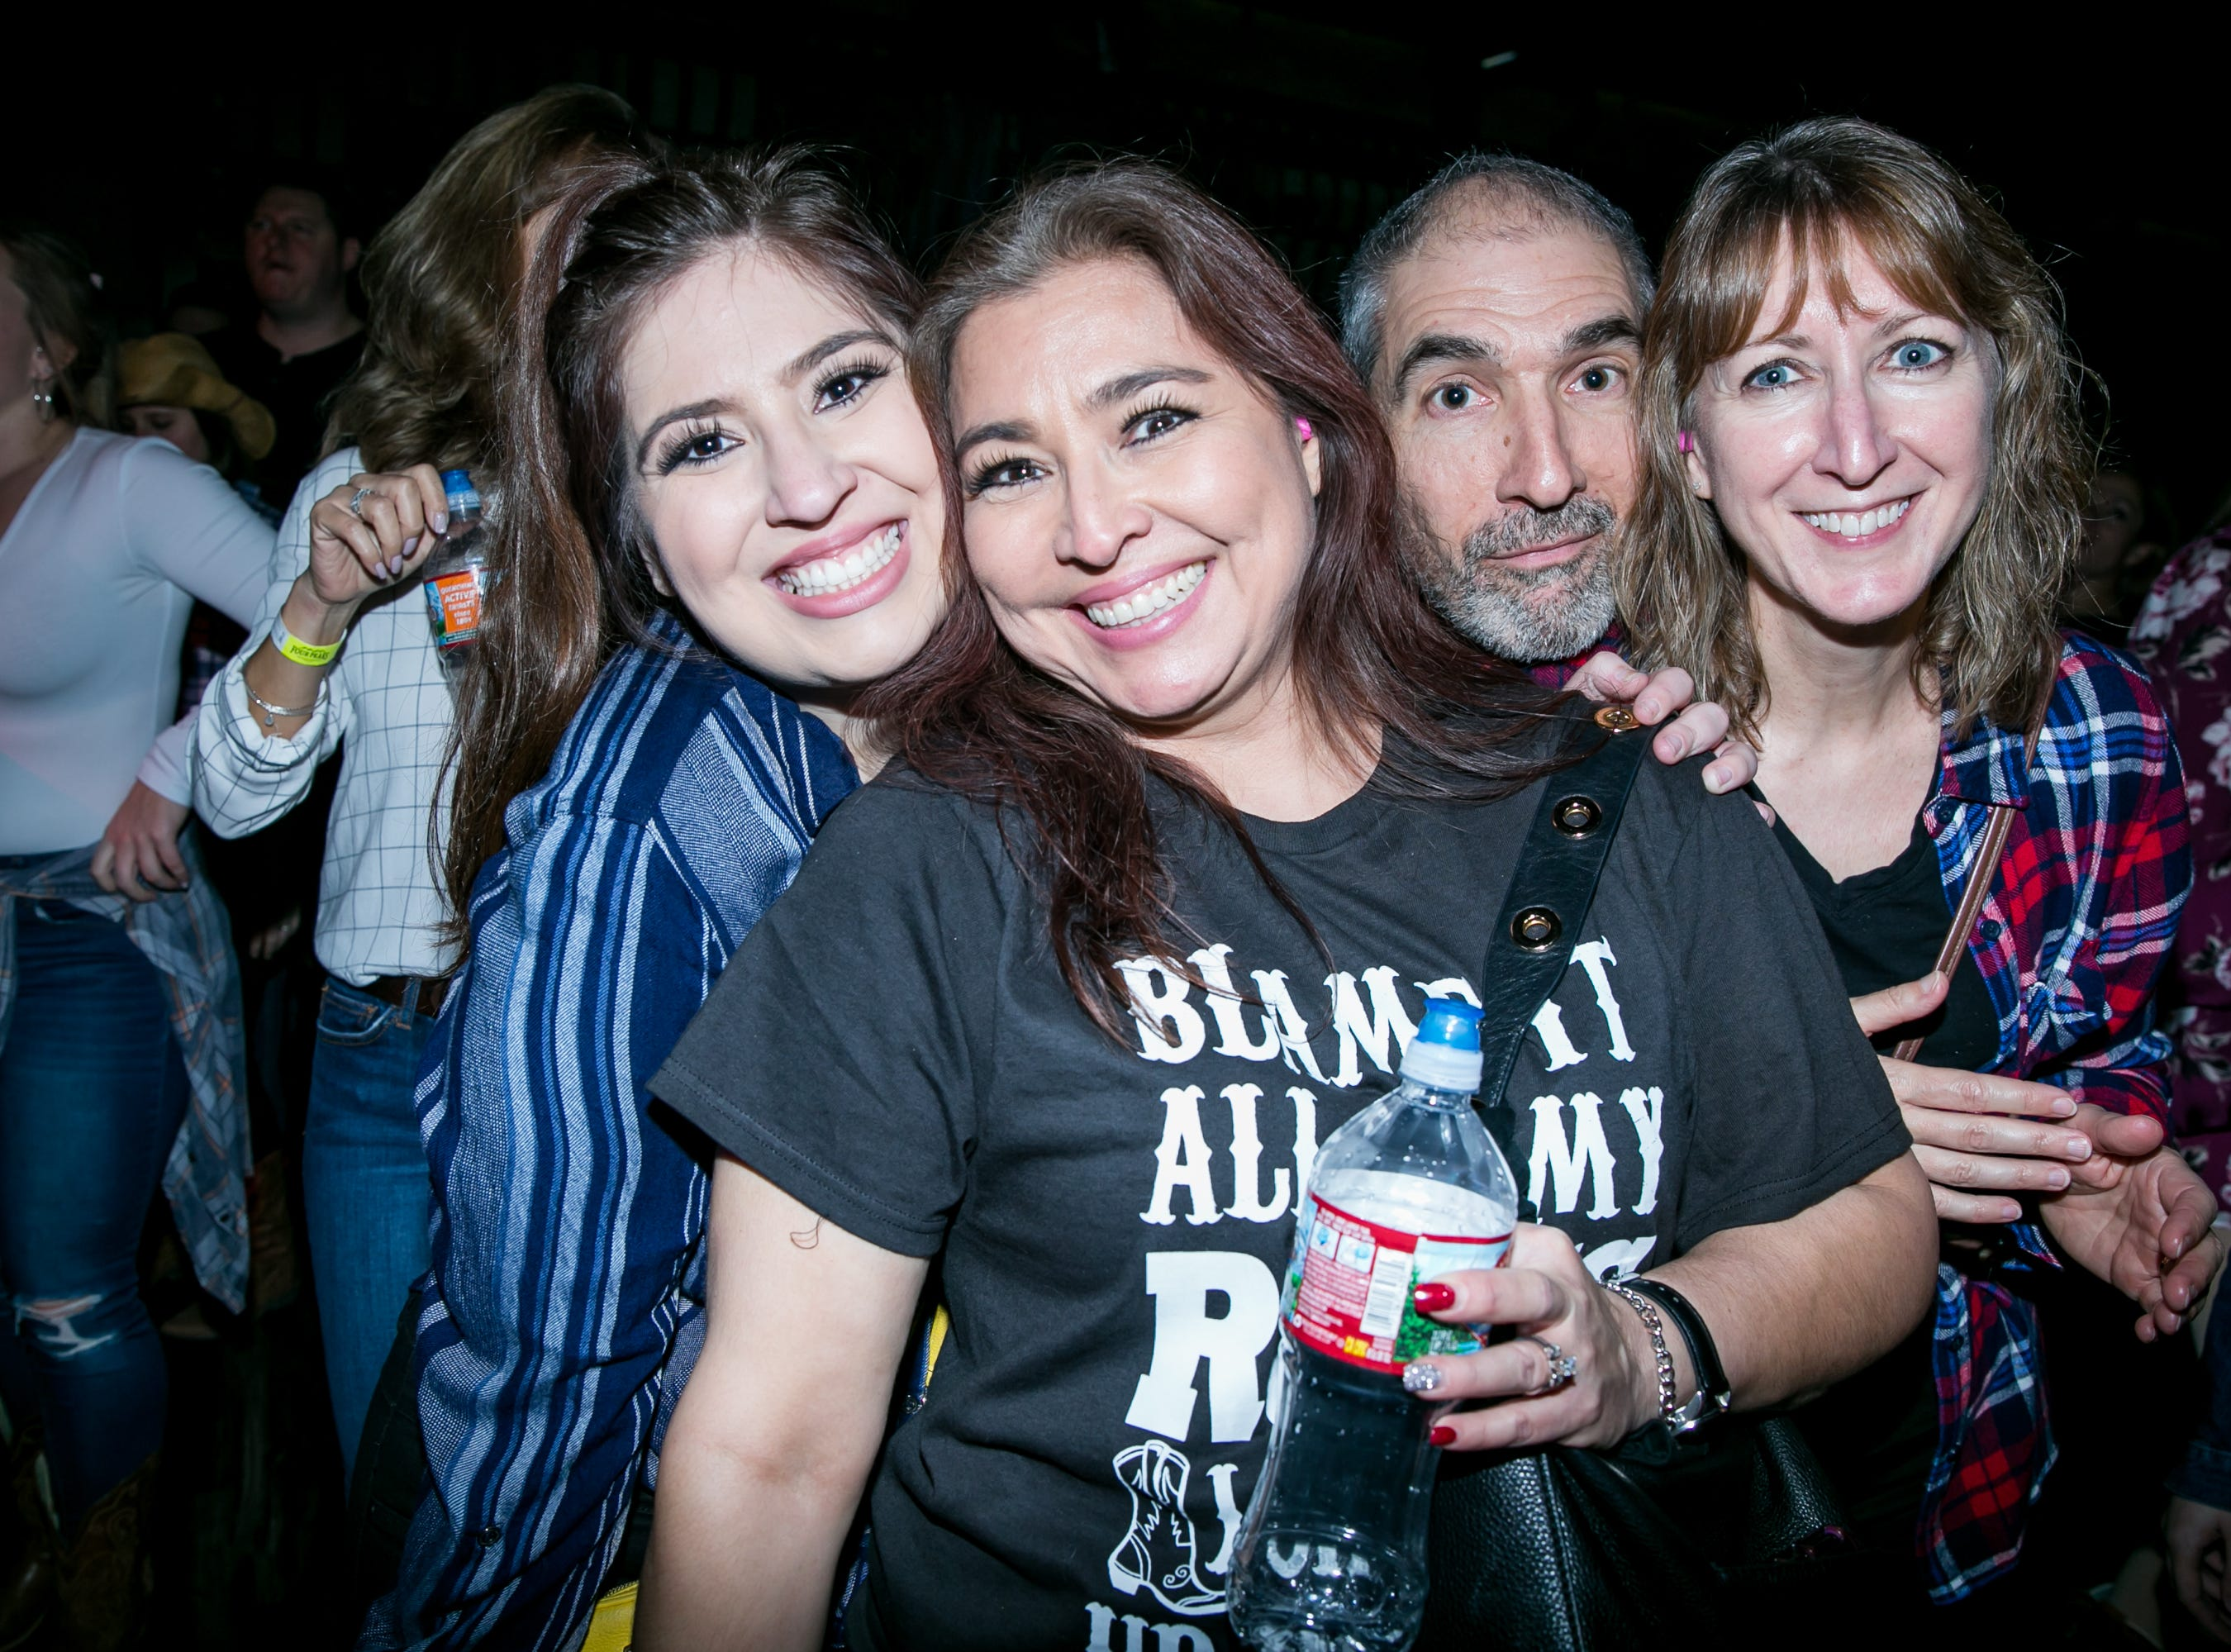 """These guys were thrilled to hear """"Sweet Home Alabama"""" during the KMLE Country 90's Throwback at The Van Buren on Friday, Jan. 11, 2019."""